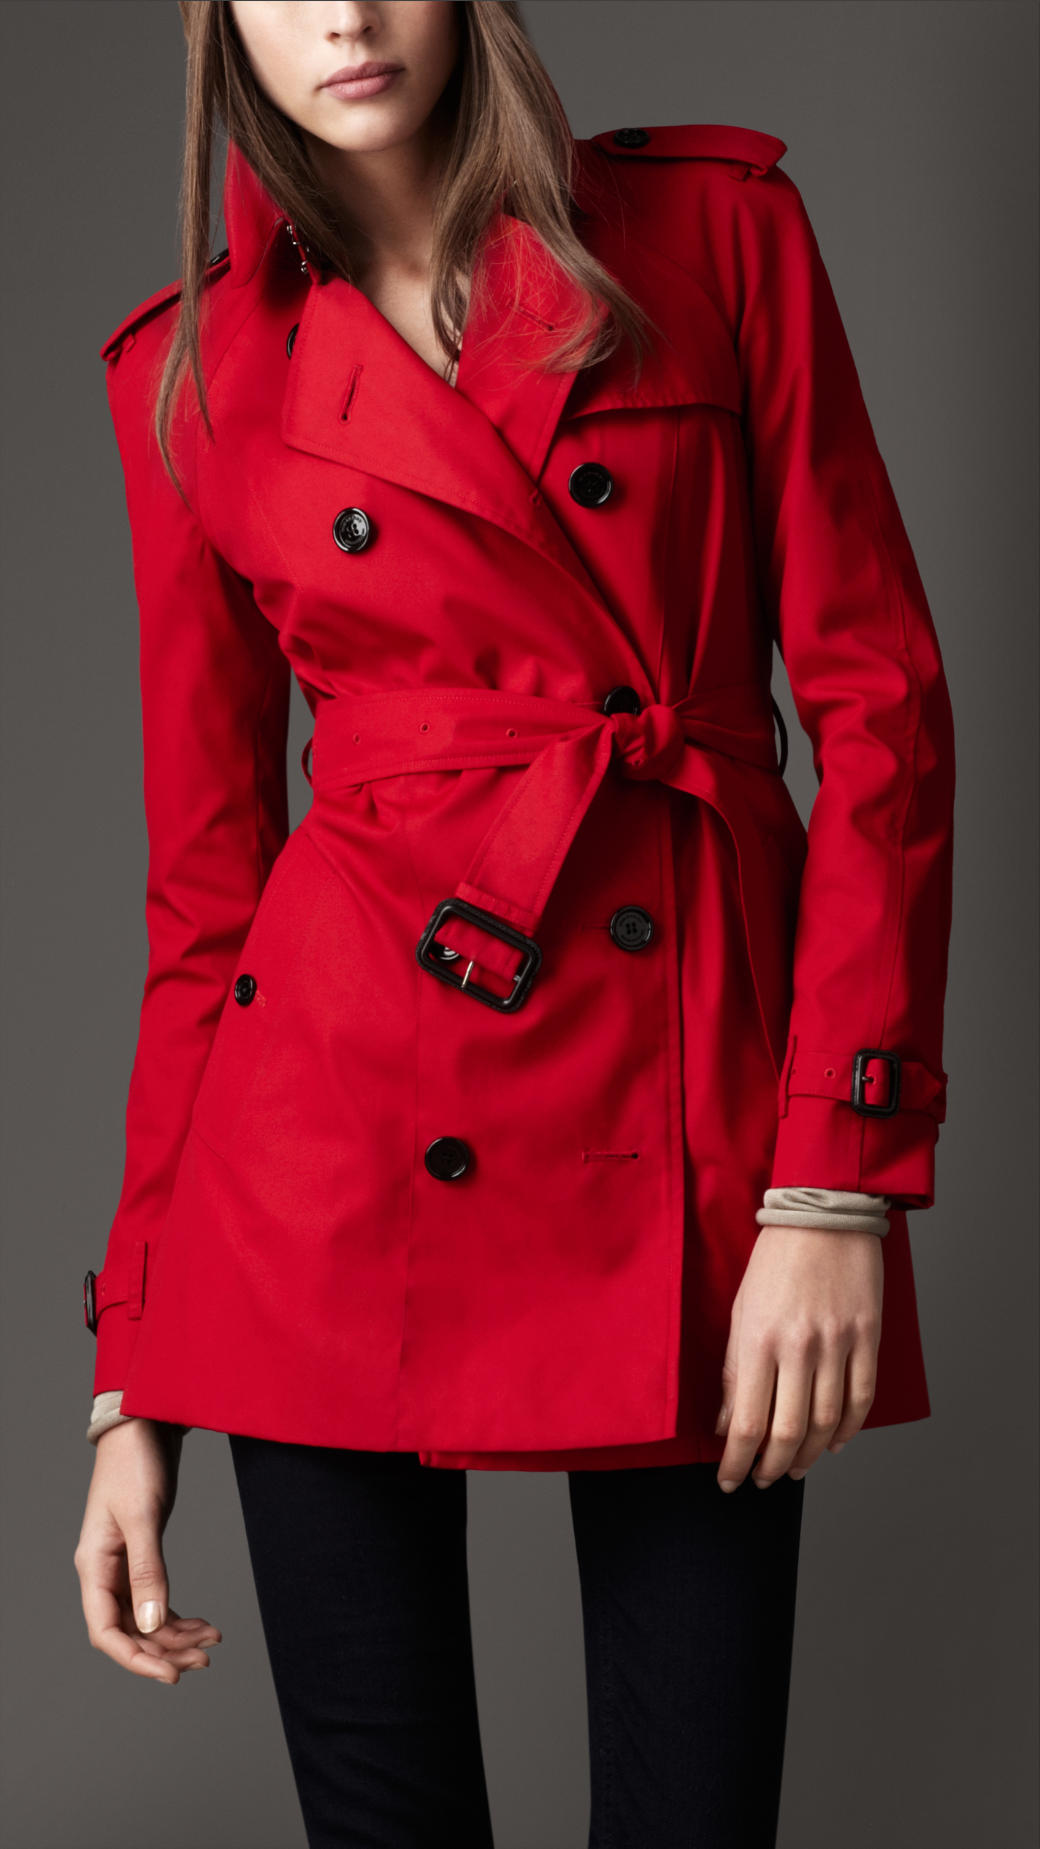 Burberry Short Cotton Blend Heritage Trench Coat in Red | Lyst